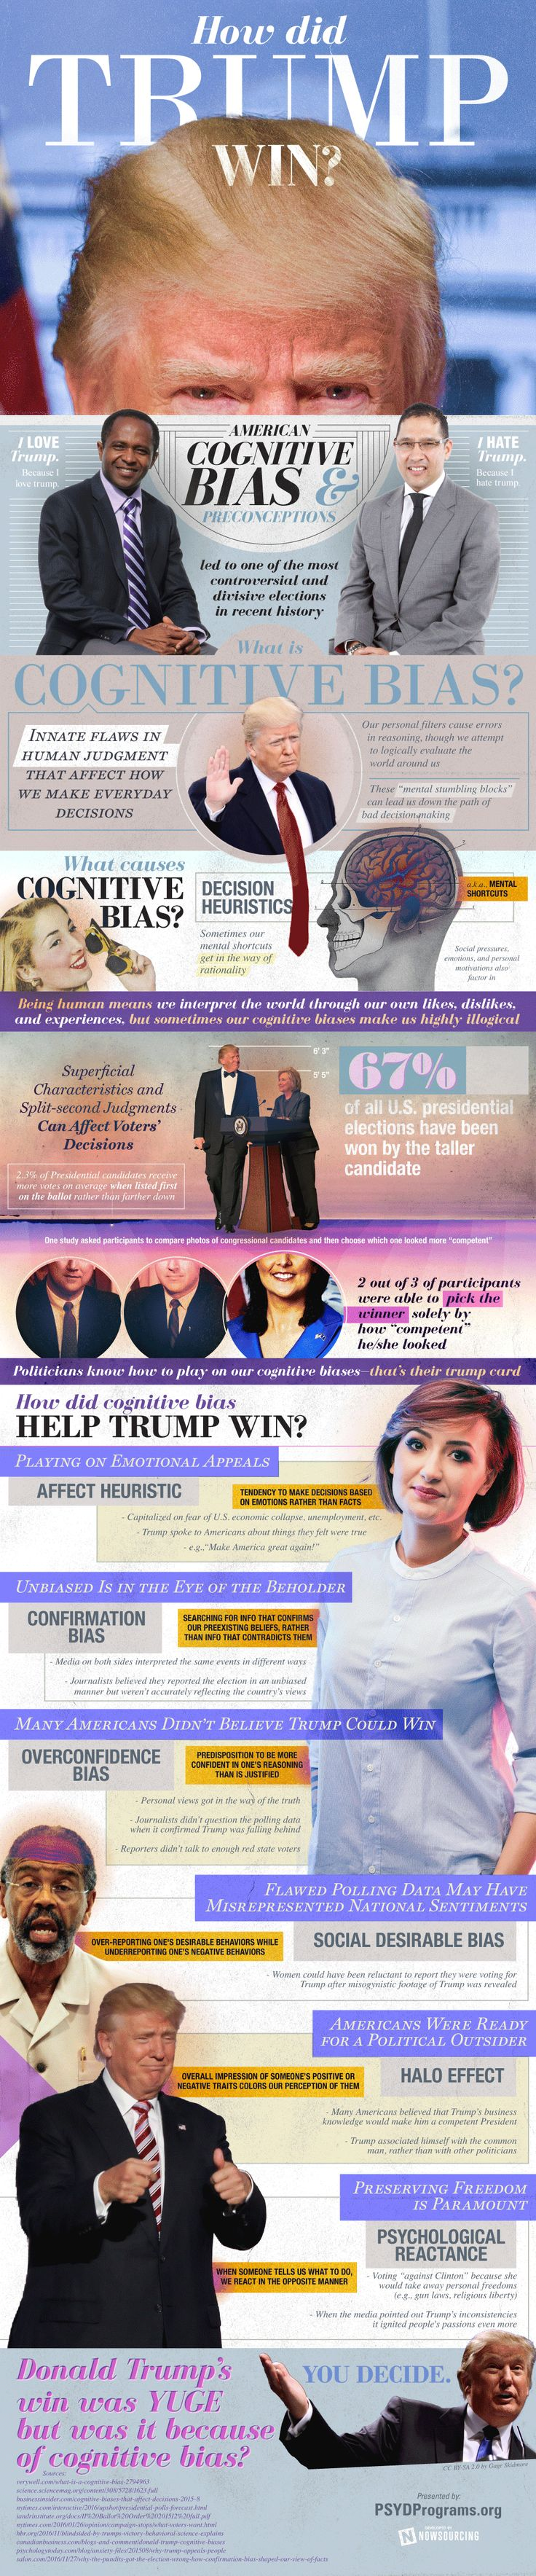 How Did Trump Win? by Nowsourcing